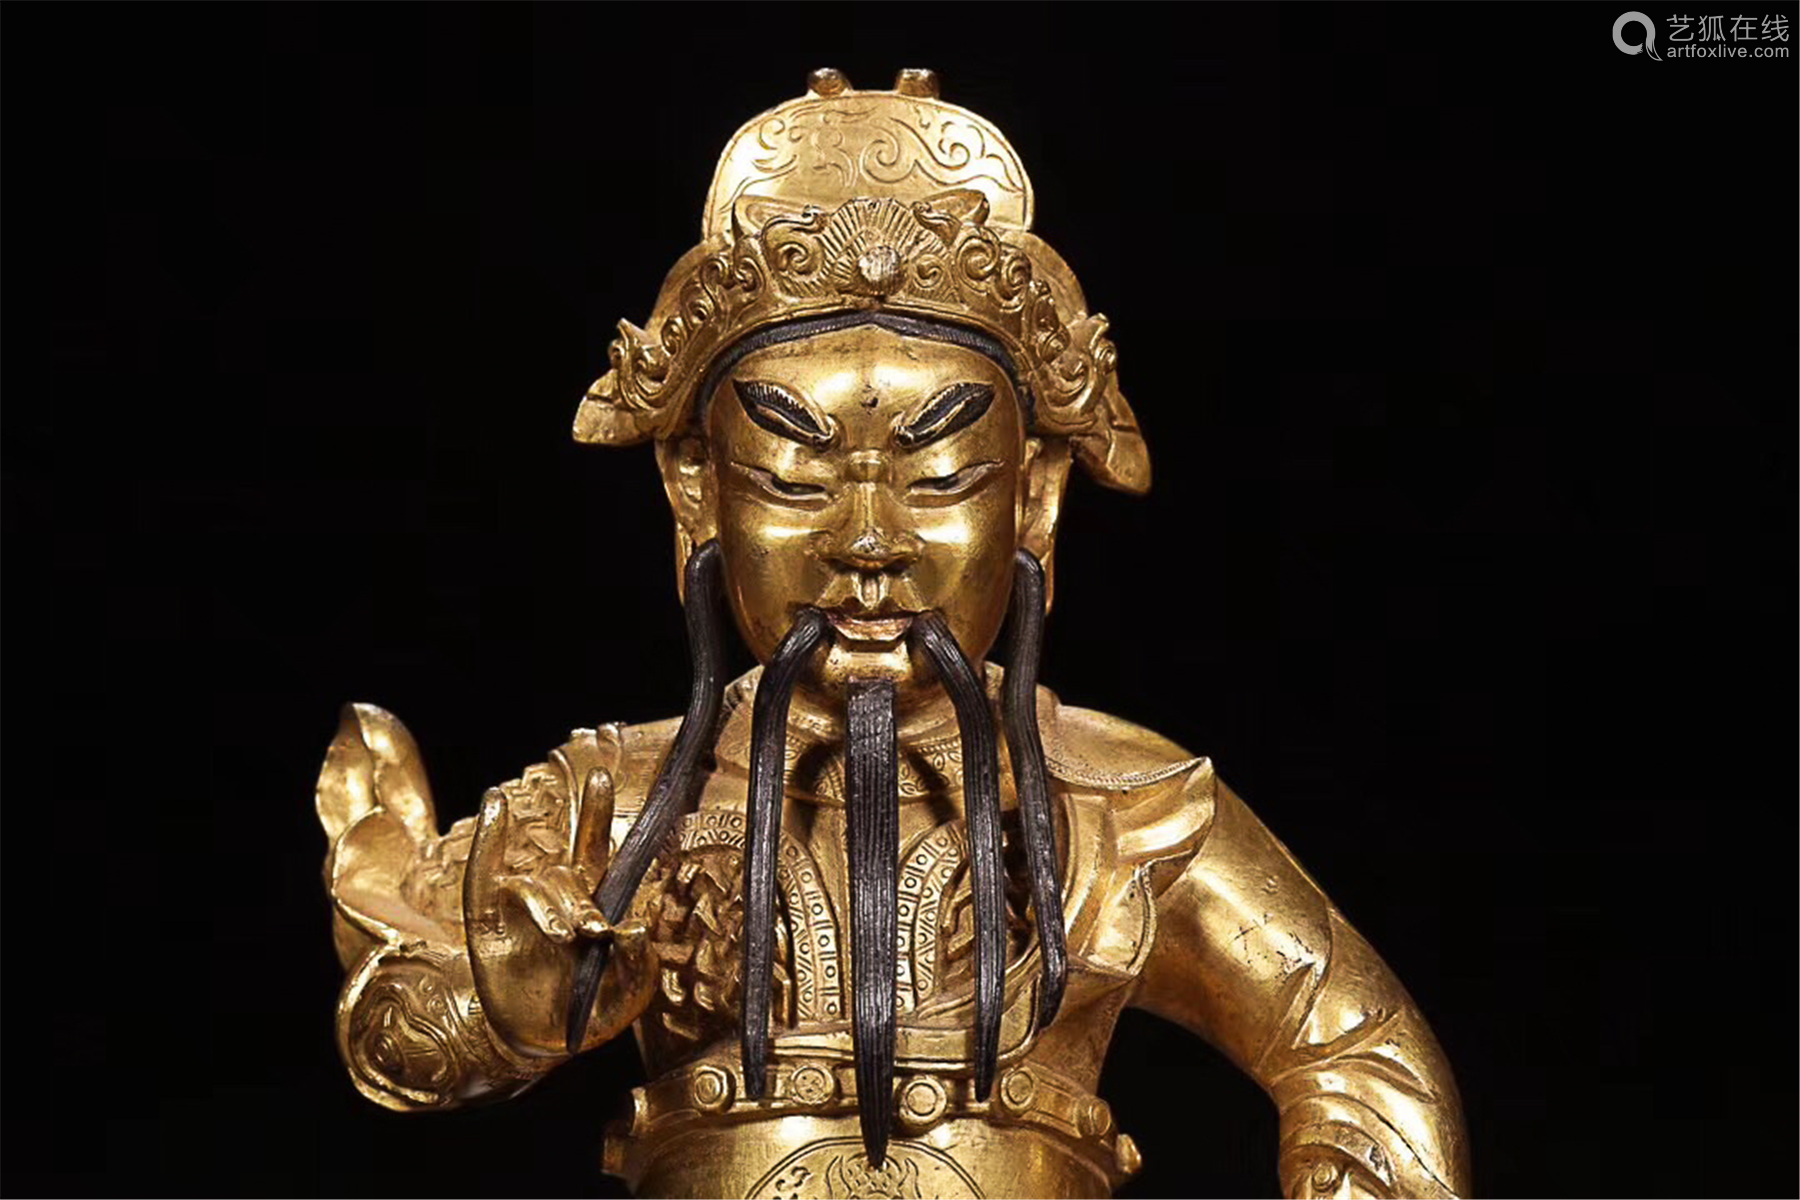 17-19TH CENTURY, A GILT BRONZE KING OF